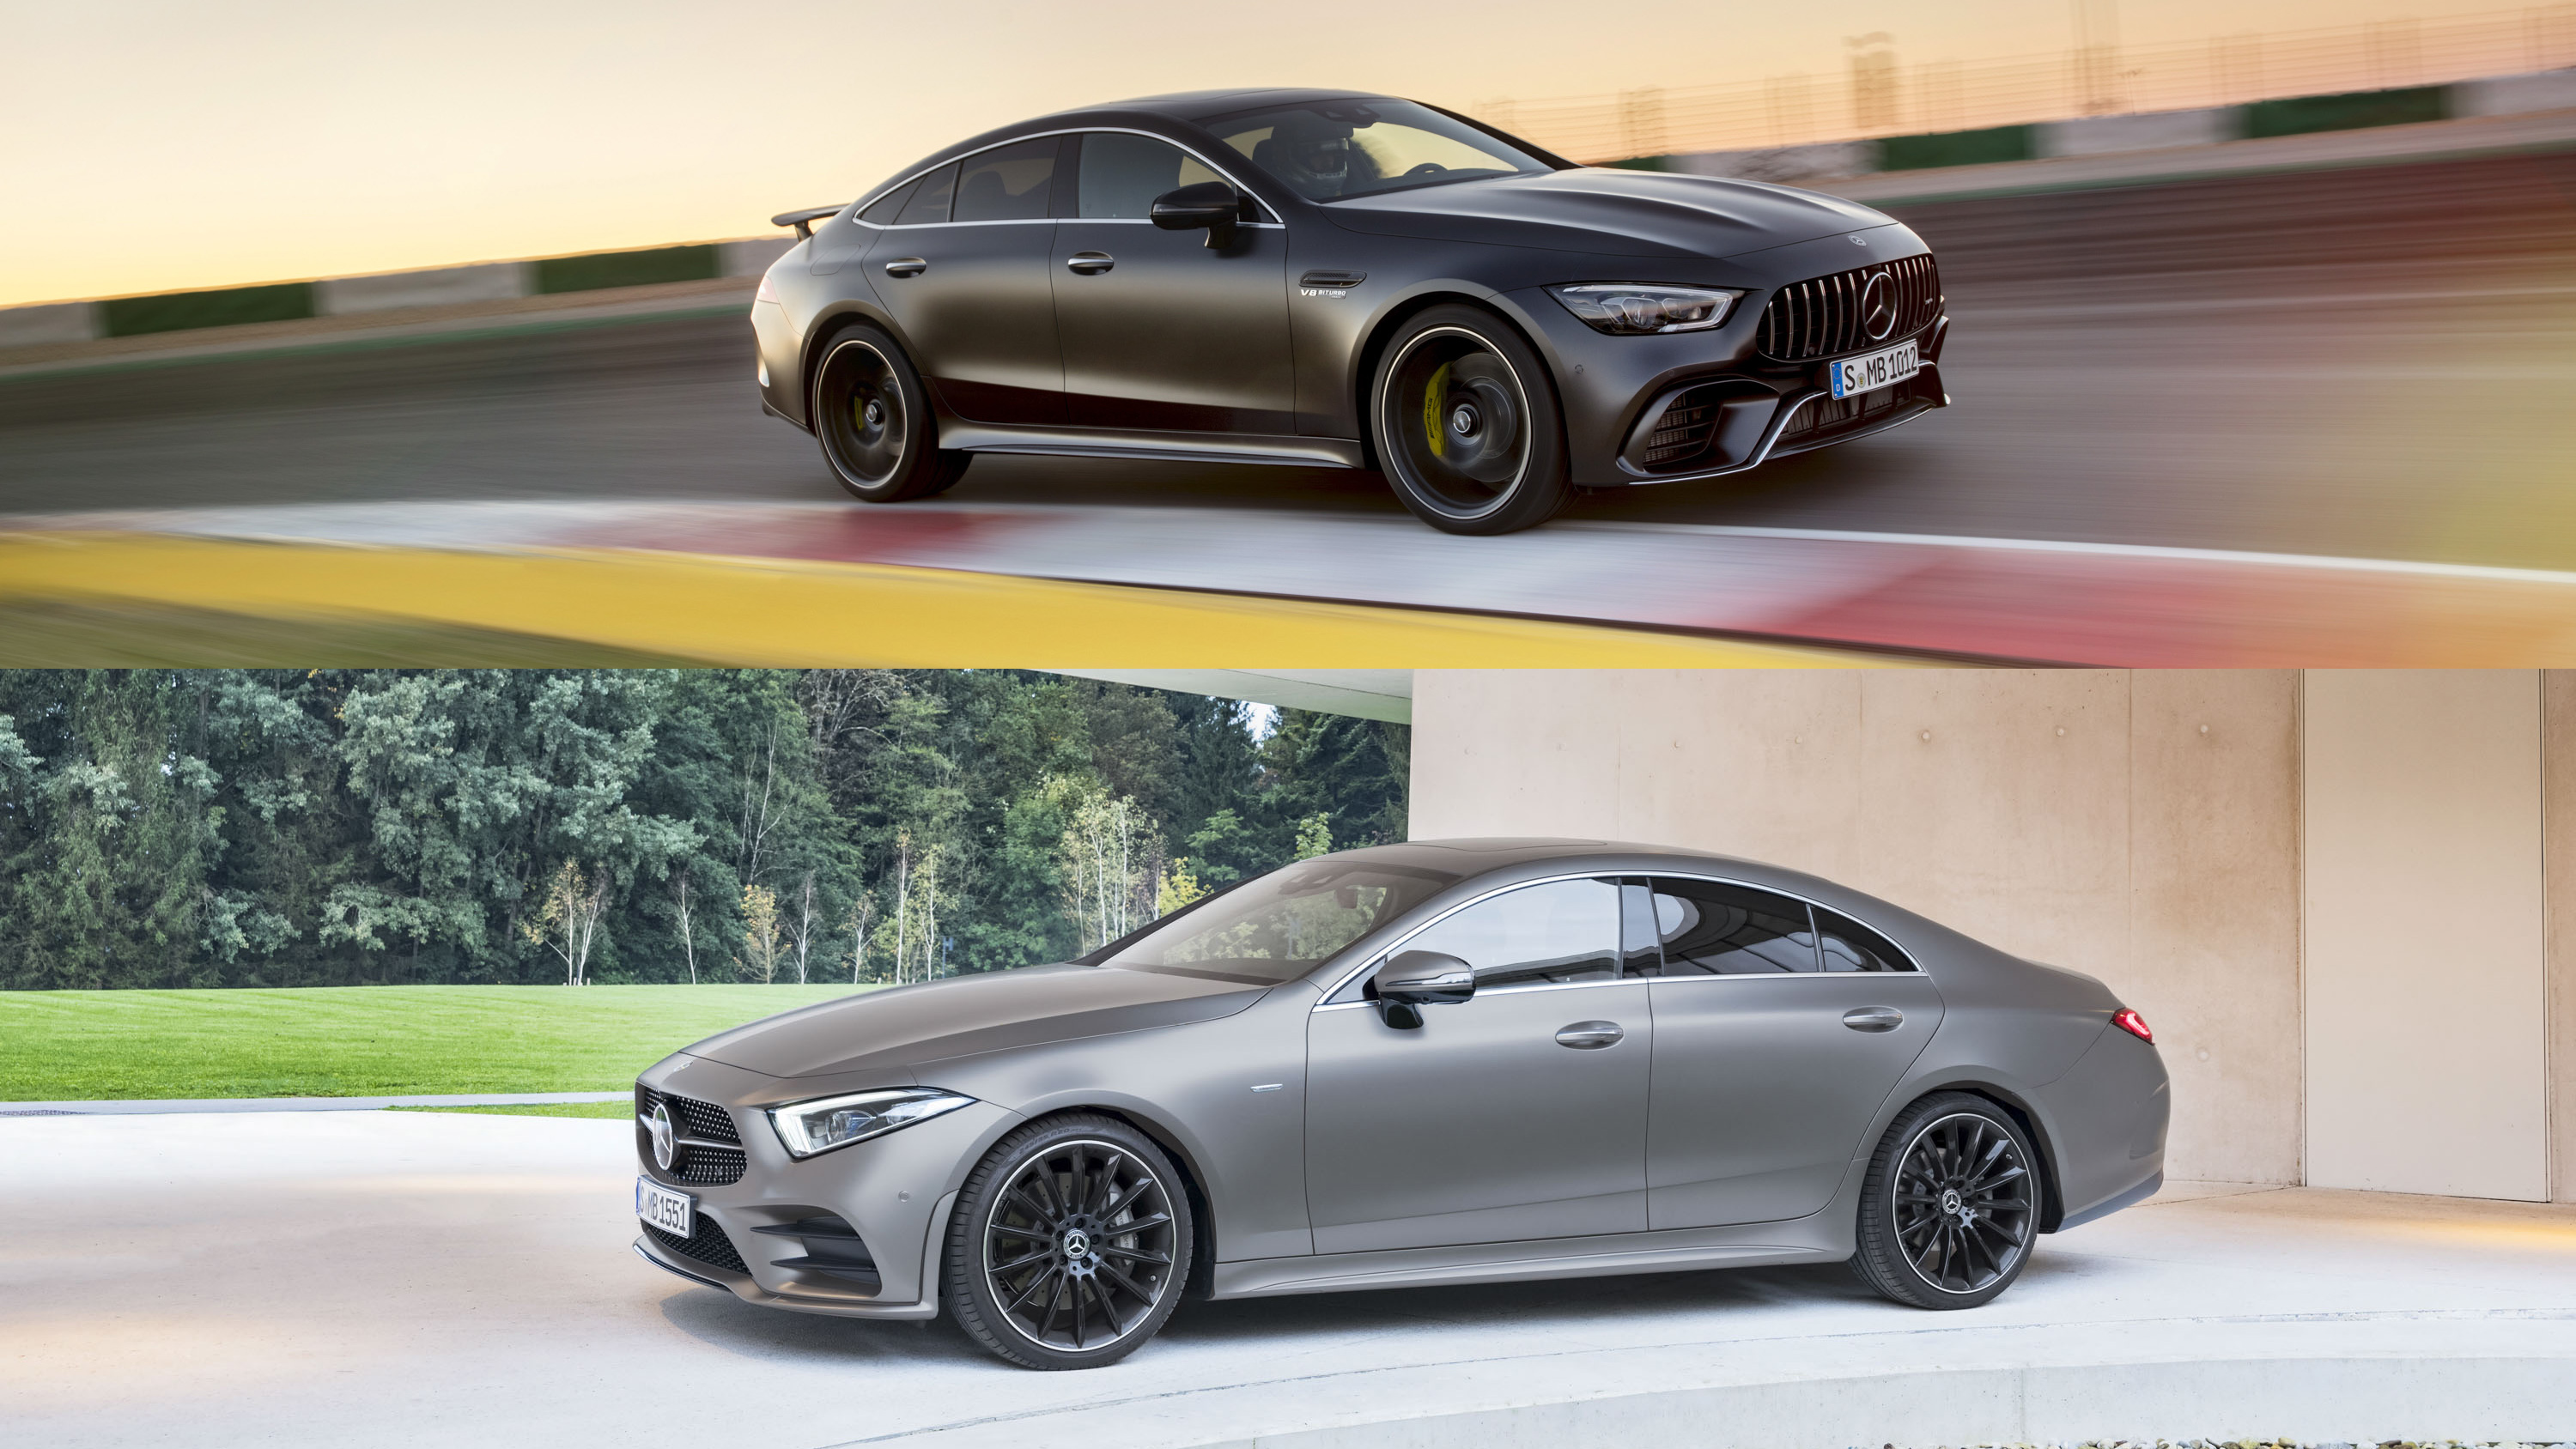 Rumored for more than two years now the four-door version of the Mercedes-AMG GT sports car finally broke cover at the 2018 Geneva Motor Show. & Mercedes-AMG GT 4-Door Coupe Vs Mercedes CLS: Hereu0027s What Sets Them ...